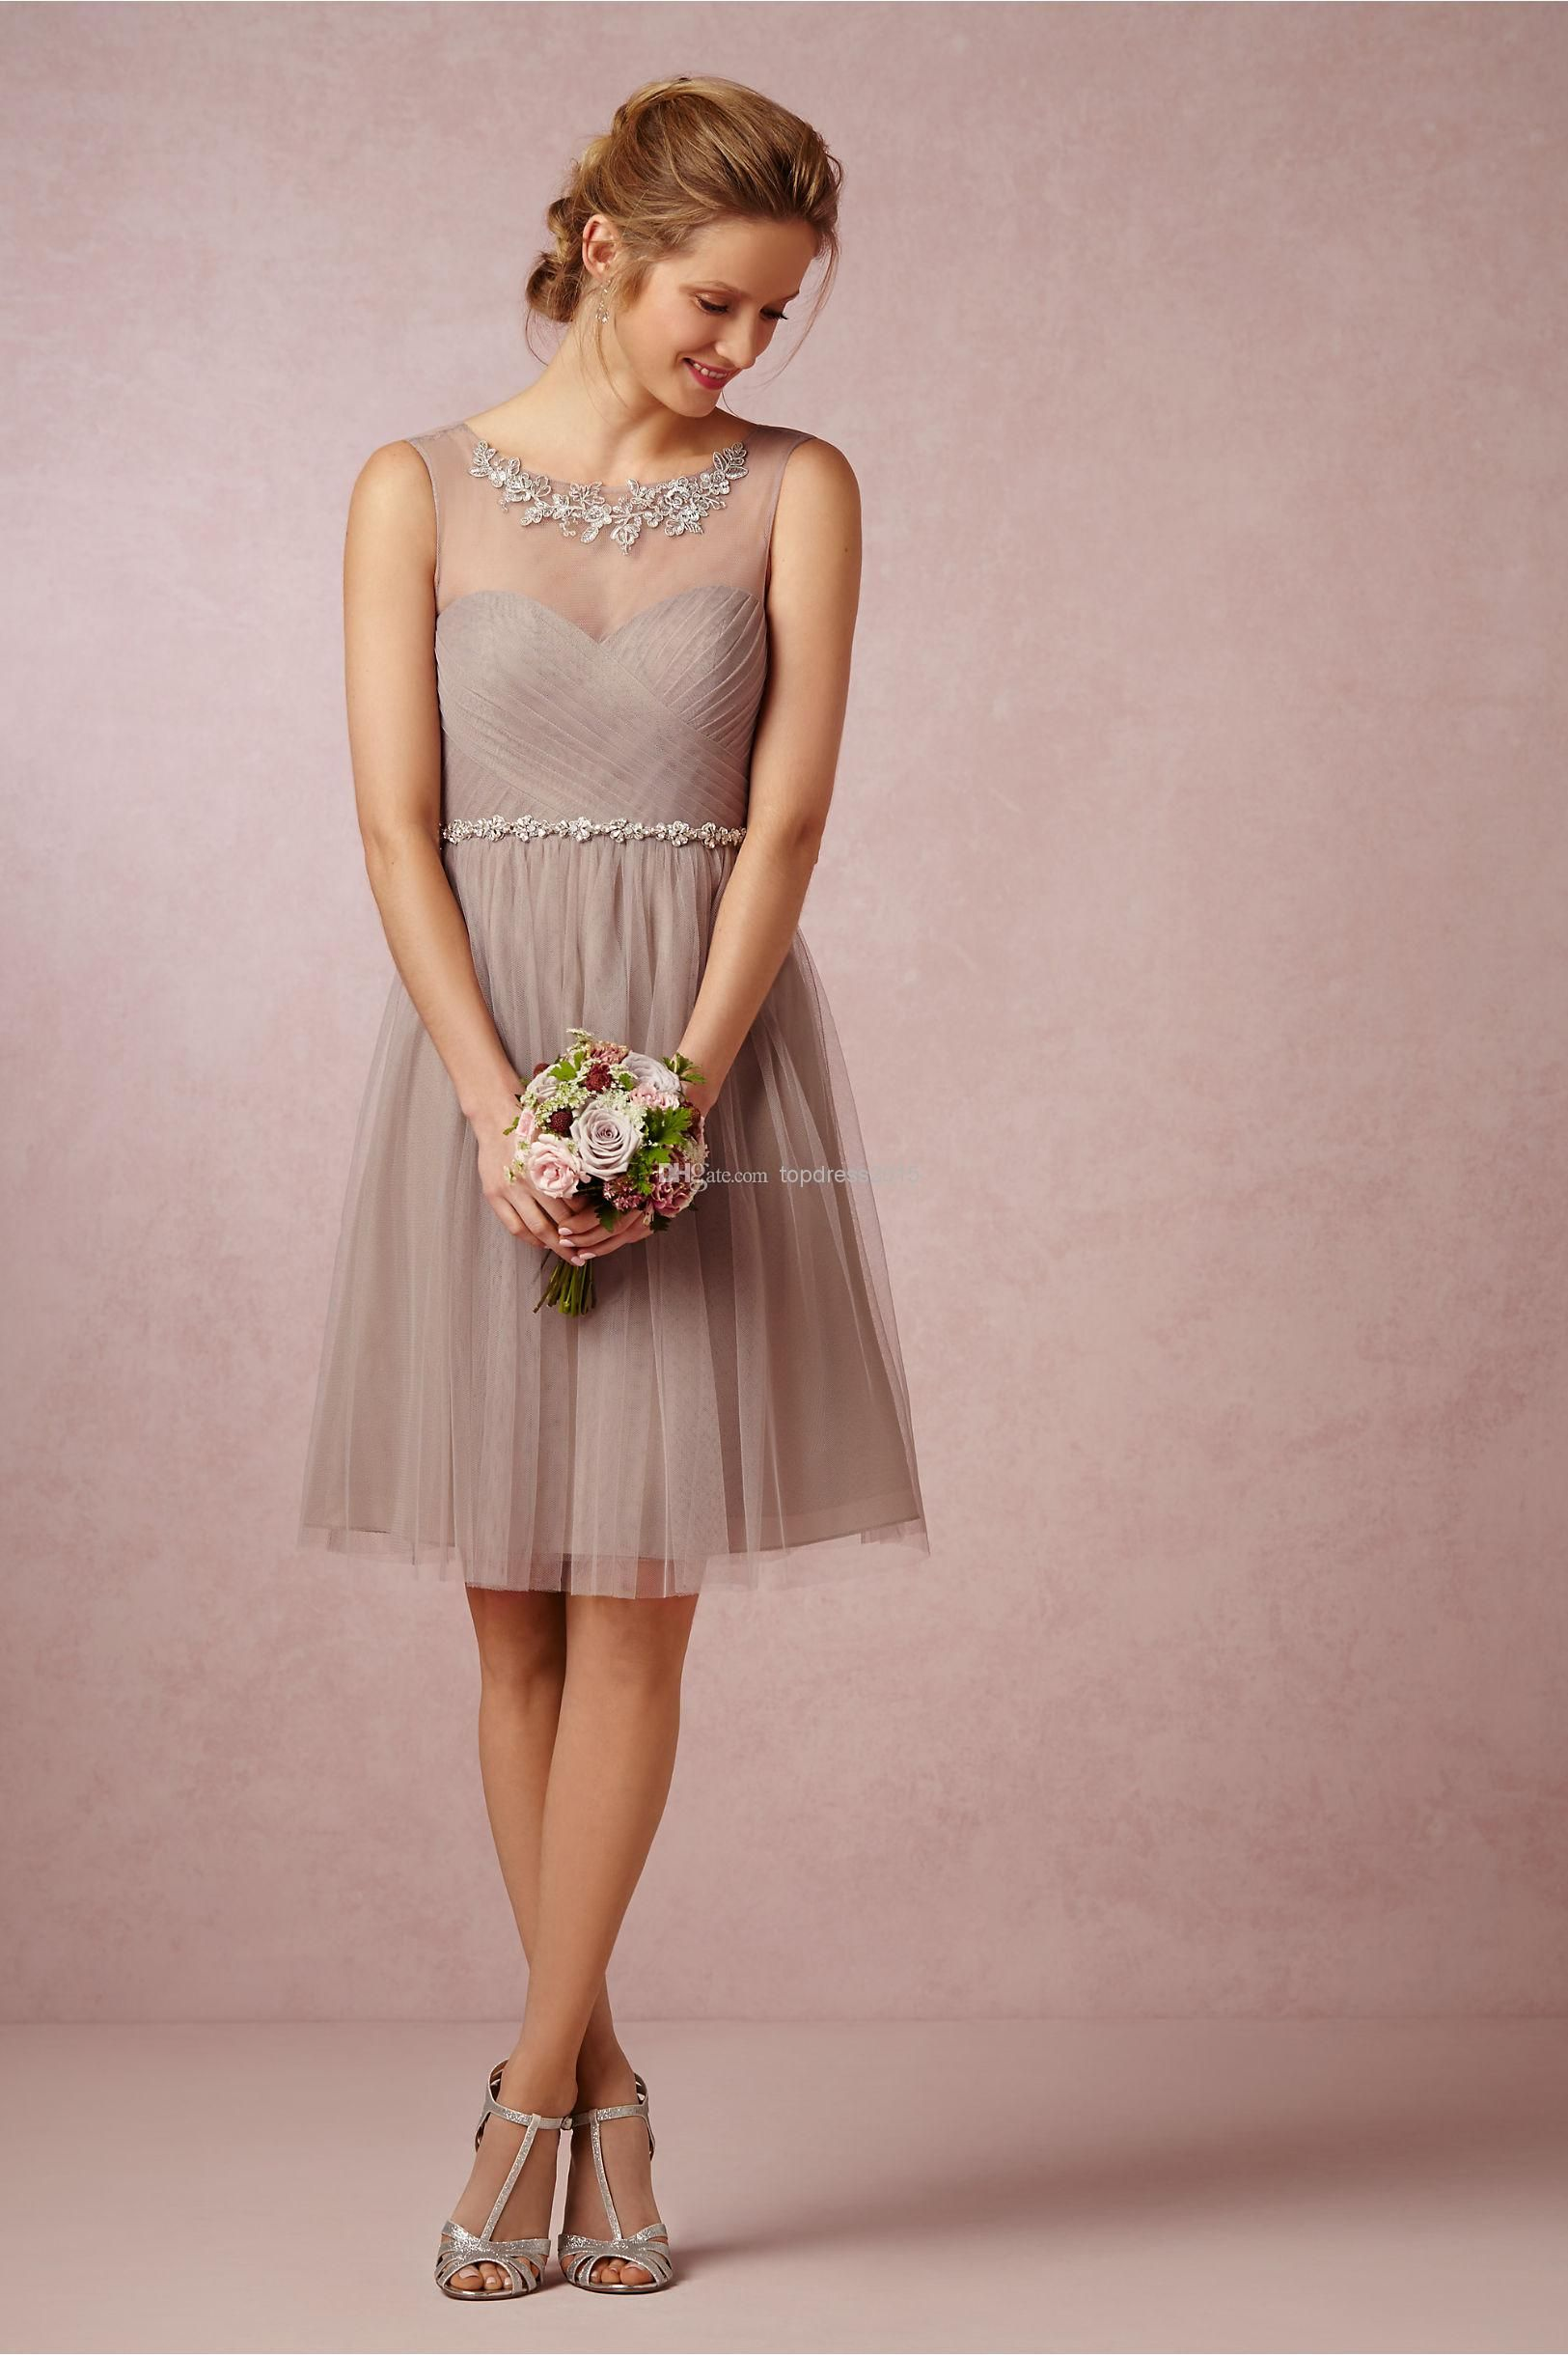 Ruched and Pleated Bridesmaid Dresses | Party gowns, Bridesmaid ...